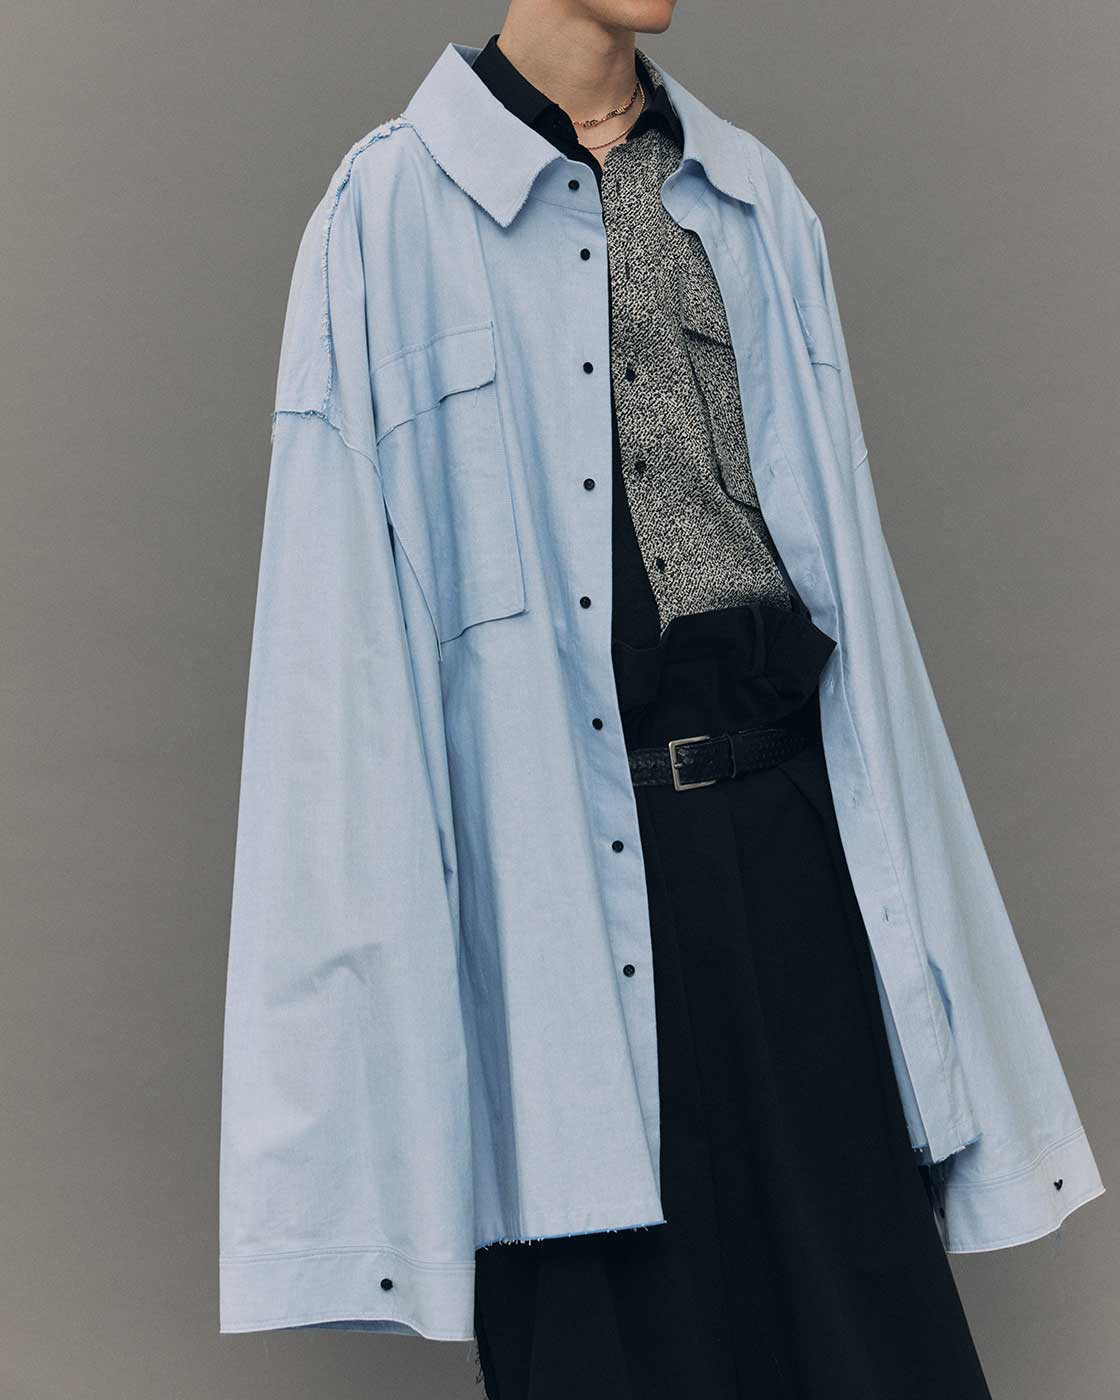 Sky Blue Cotton Oxford Oversized Shirts